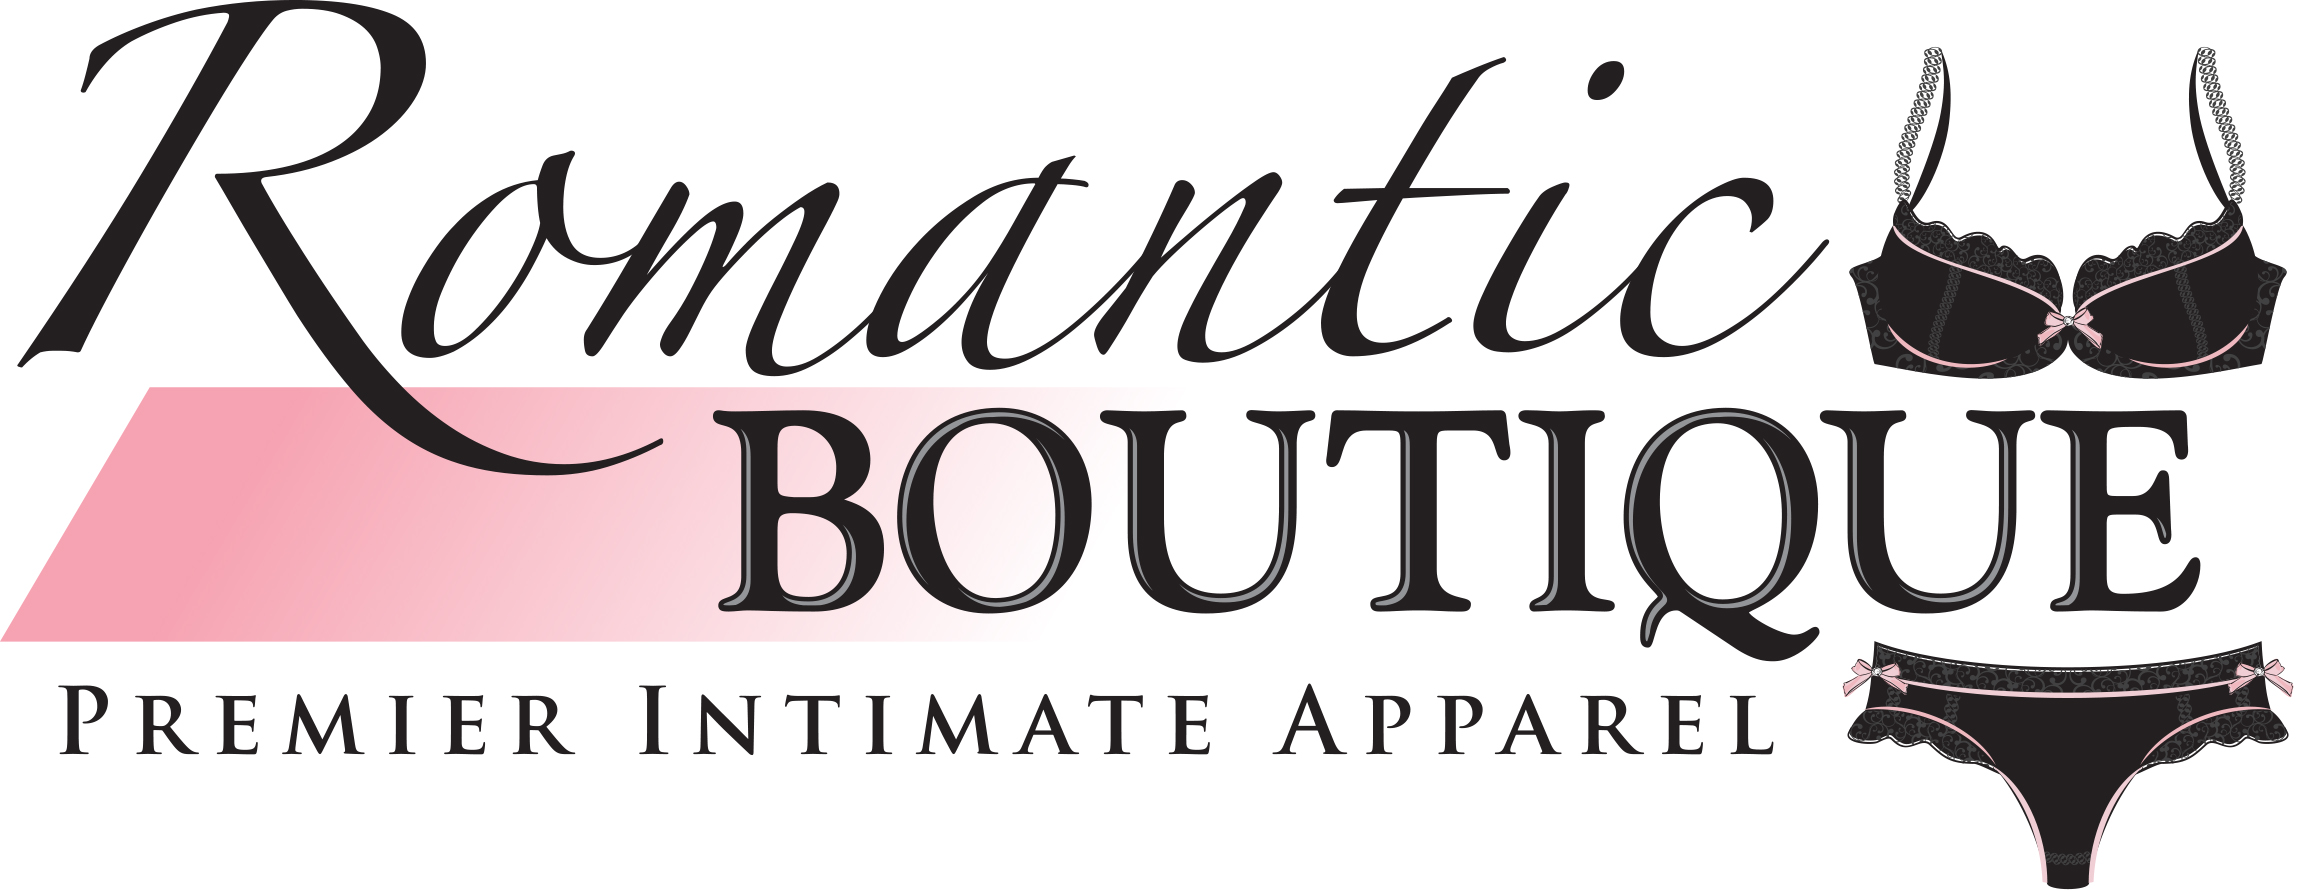 Romantic Boutique by Delicate Illusions